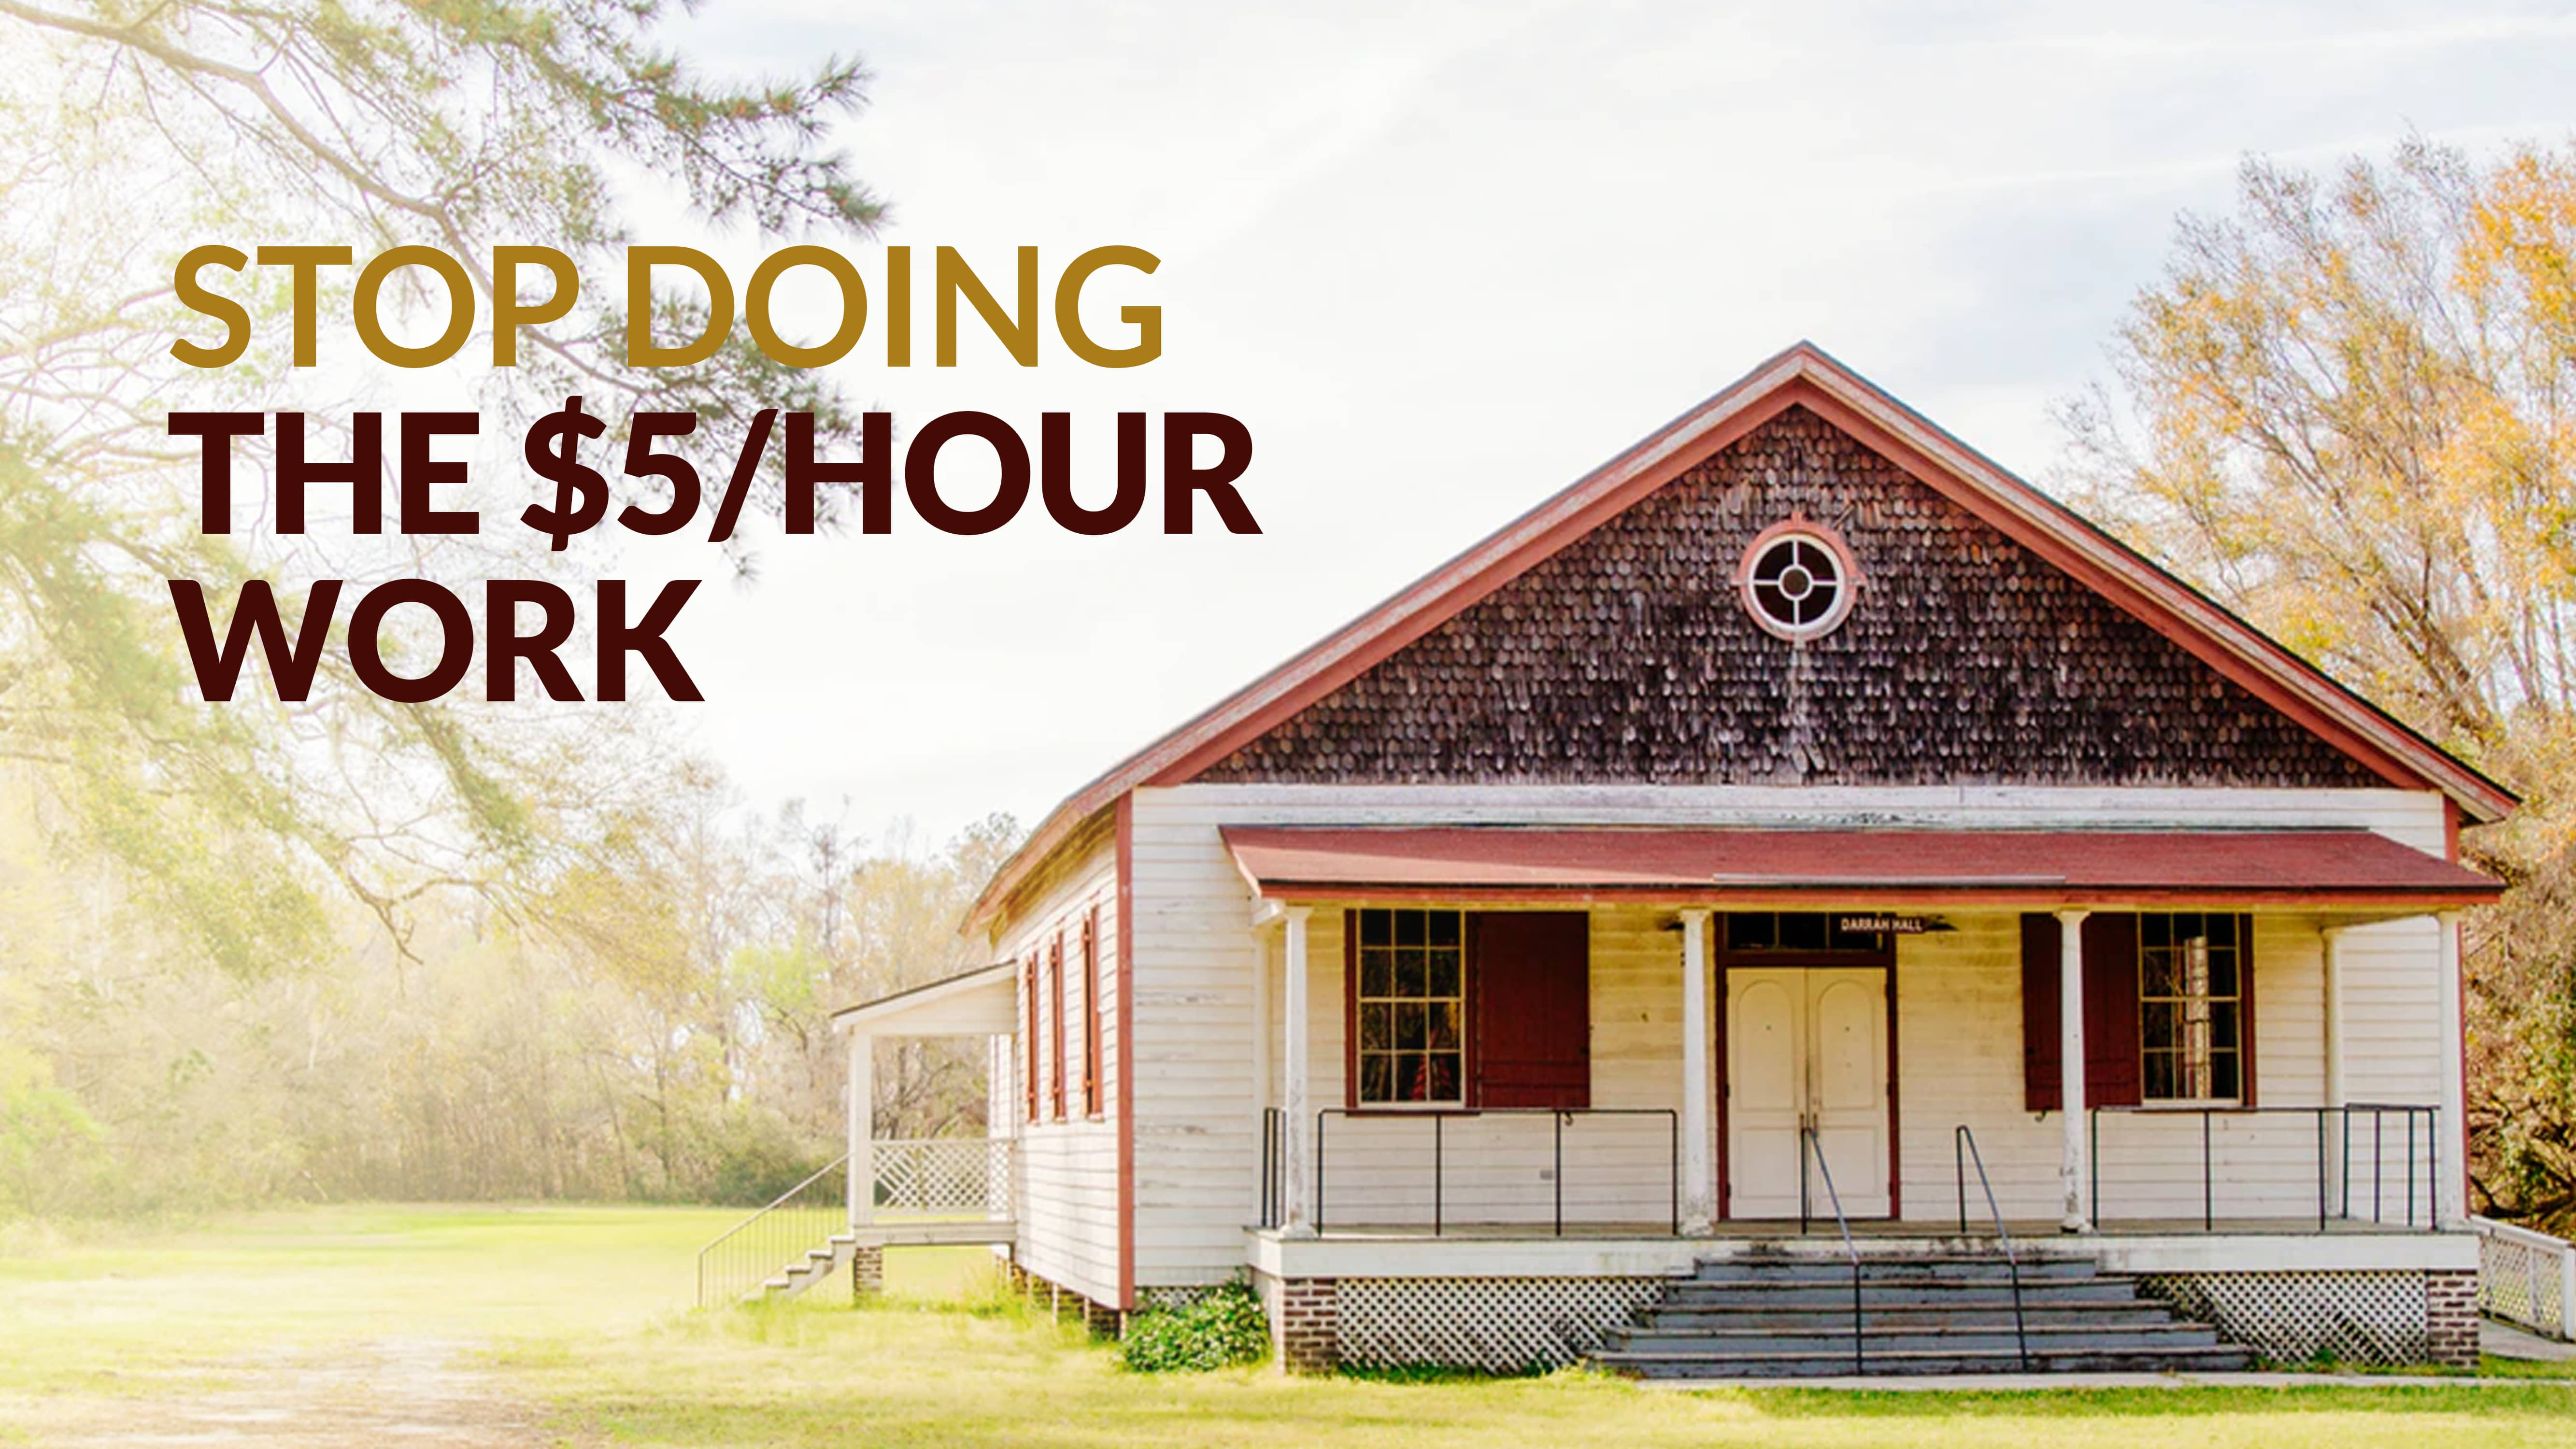 Stop doing the $5/hour work